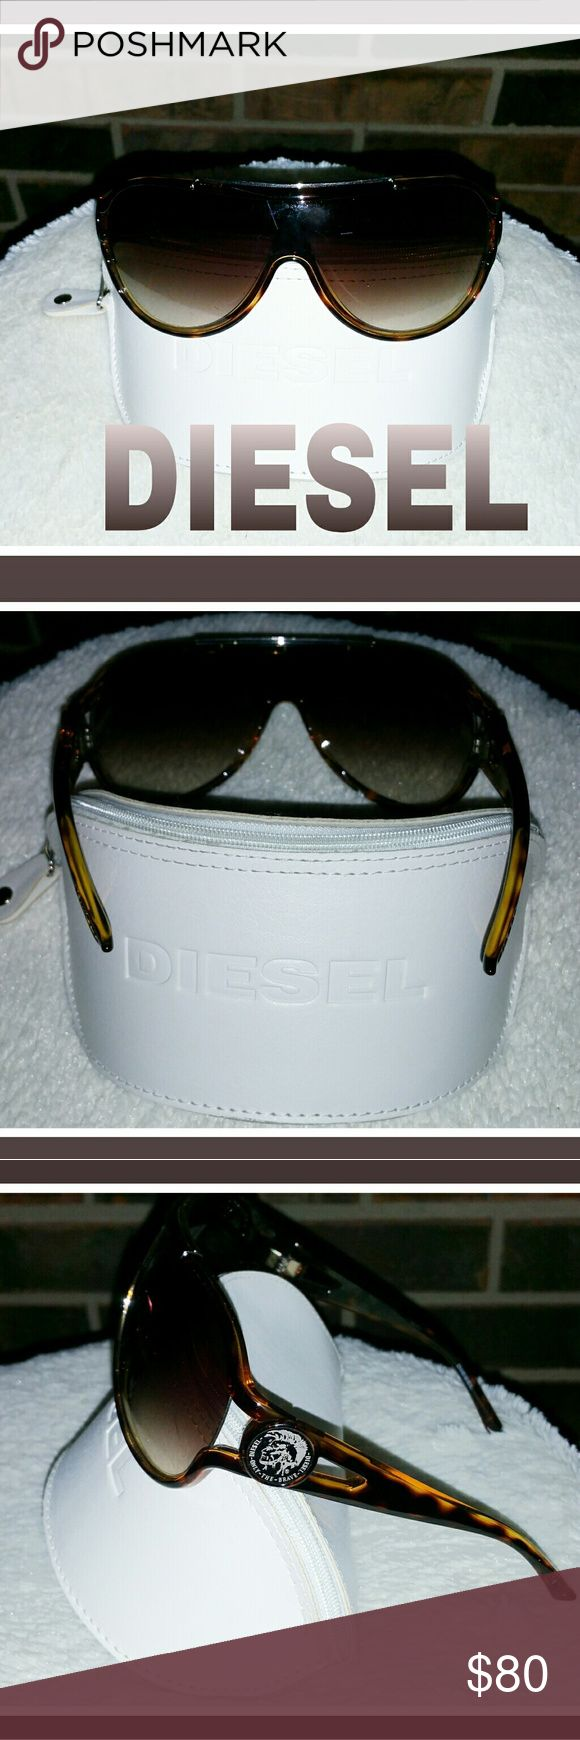 Diesel Brand Men's Sunglasses Diesel Brand Brown Tortise Shell Large Sunglasses. Comes with Case. Diesel Accessories Sunglasses